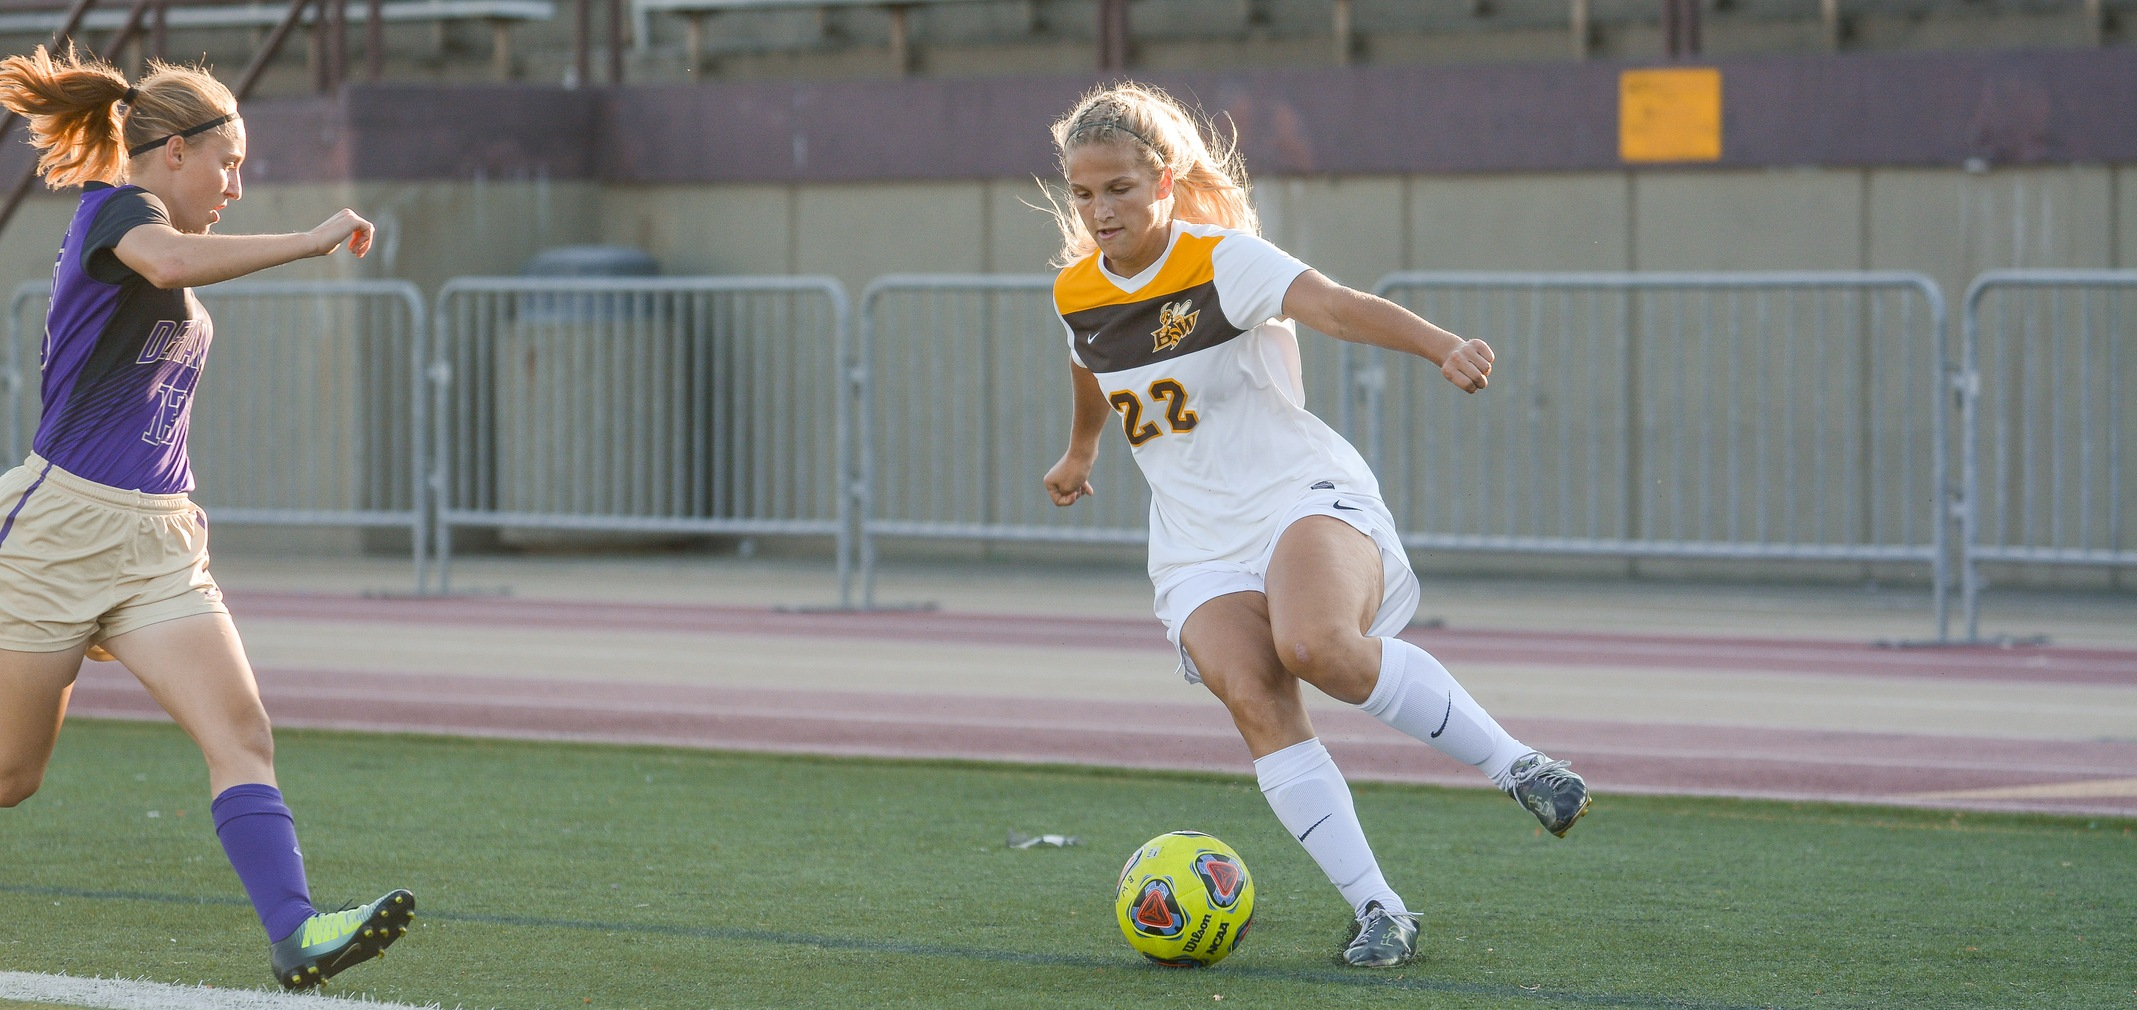 Freshman forward Olivia Muldoon (Photo by William Lekan)